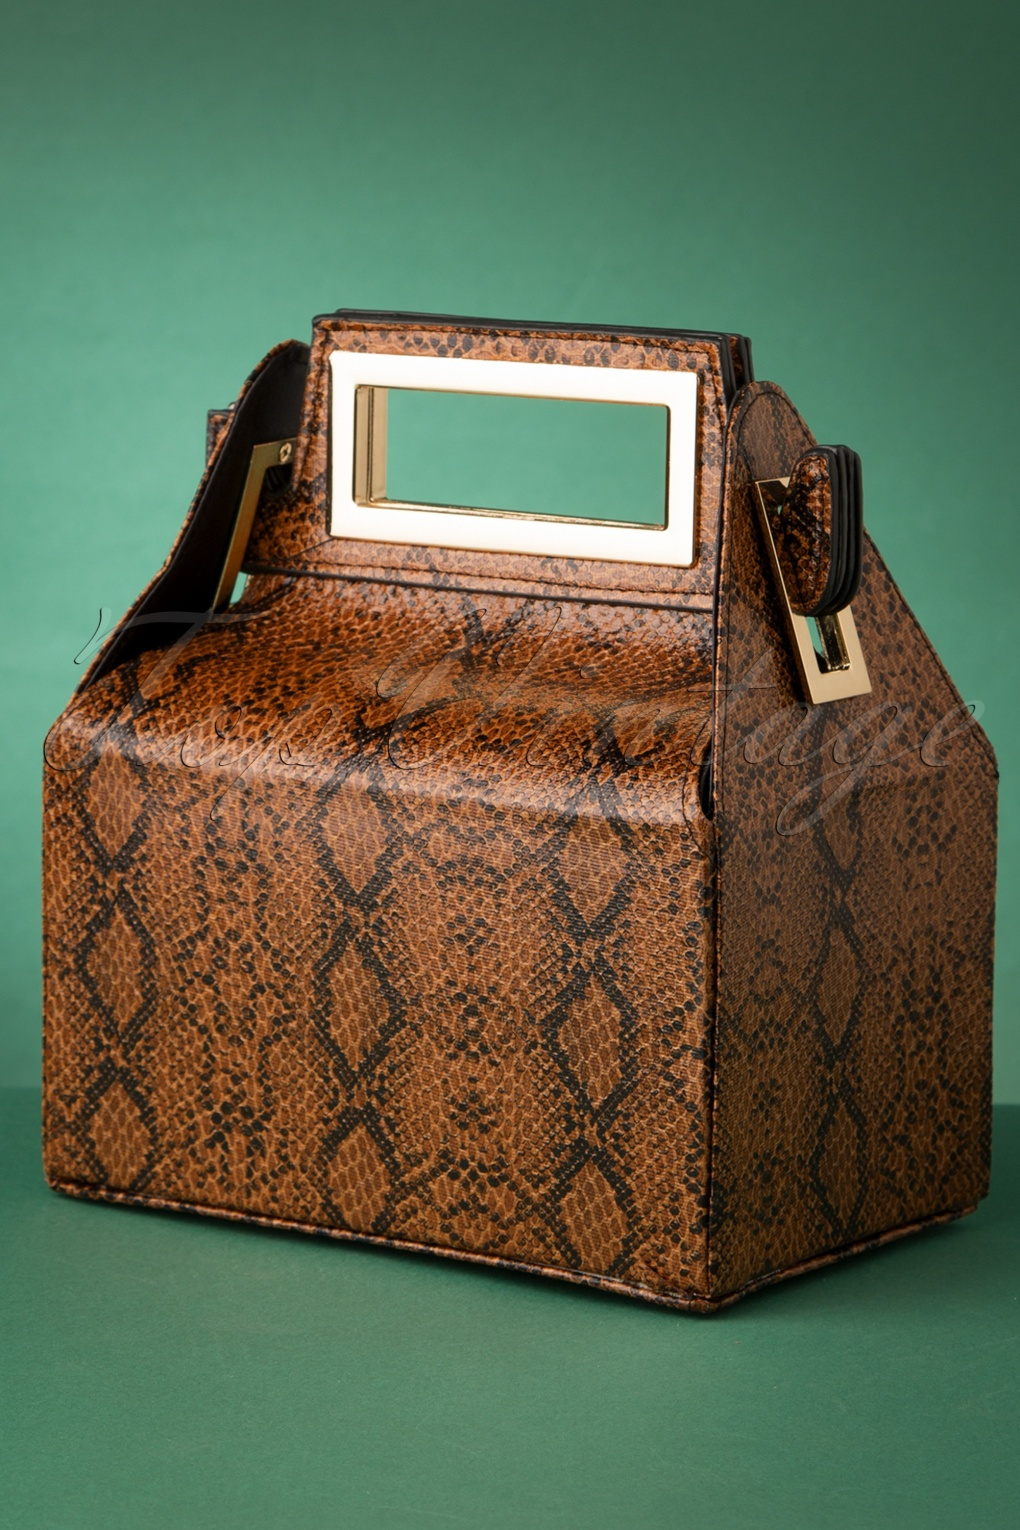 1960s Style Dresses, Clothing, Shoes UK 60s Una Snake Box Bag in Brown £38.57 AT vintagedancer.com